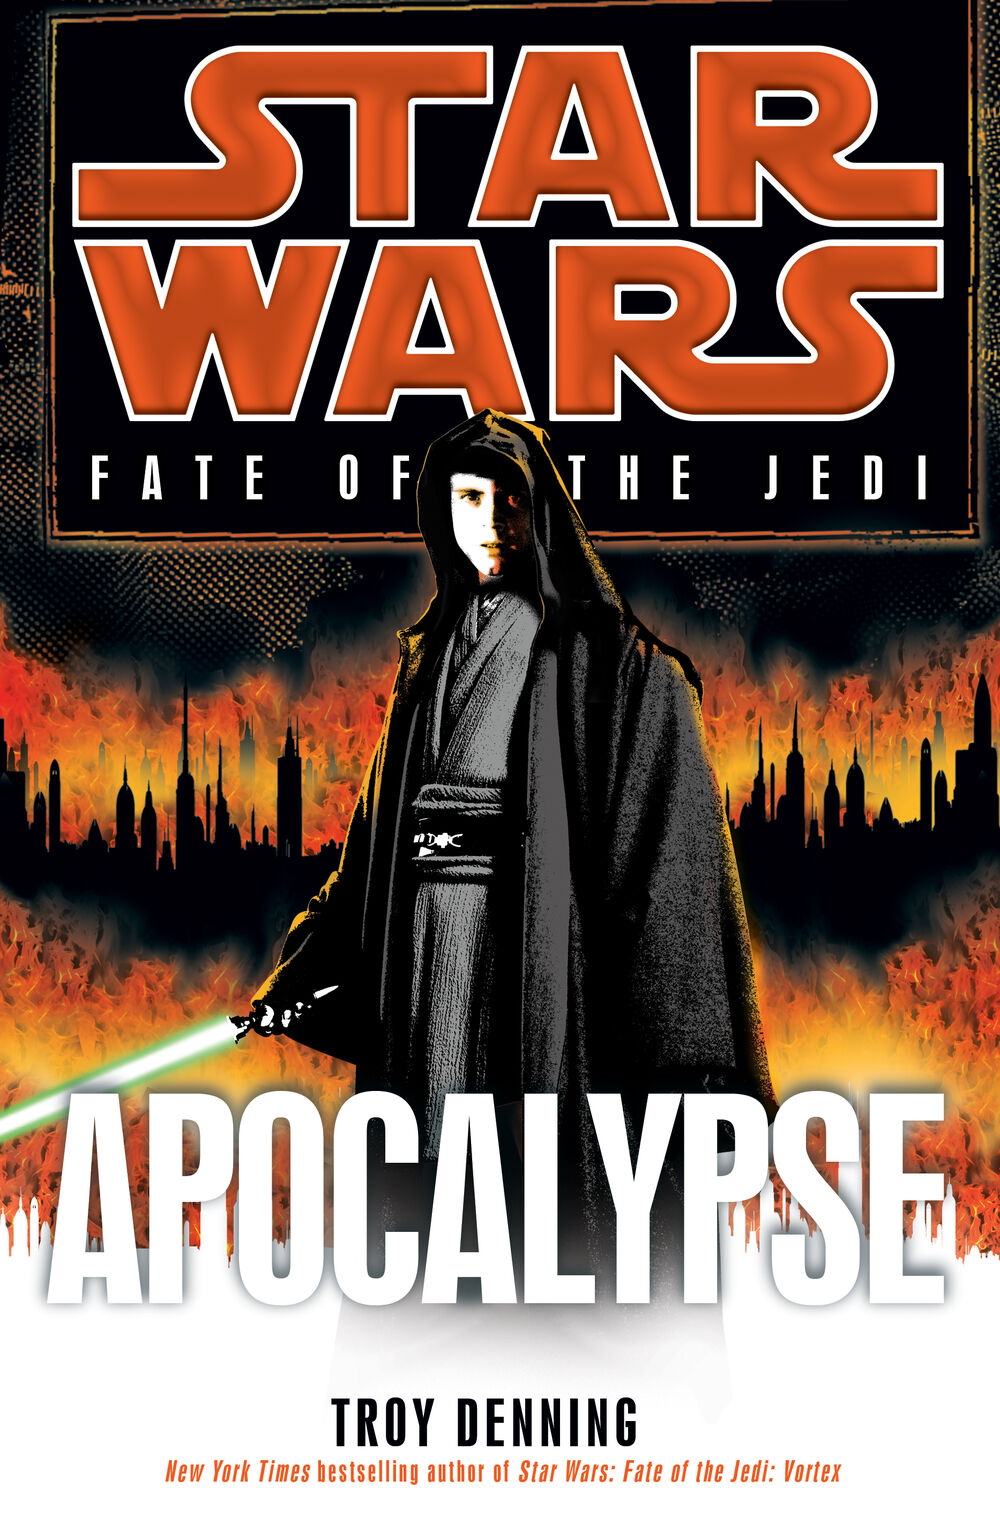 Star Wars Fate of the Jedi: Apocalypse